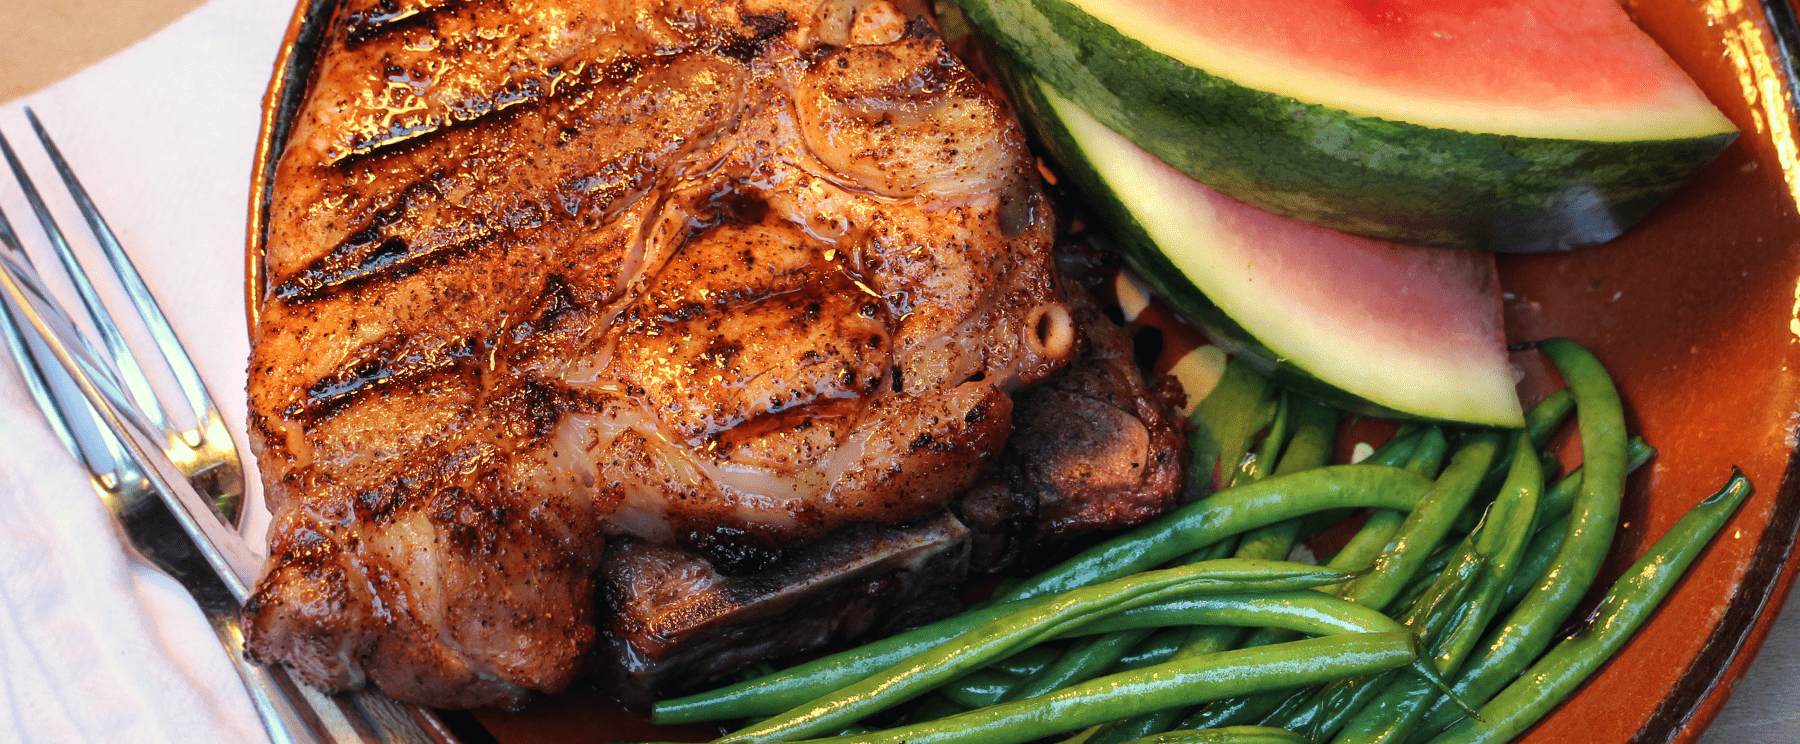 A plate of JK's seasoned pork porterhouse chop, green beans and watermelon slices.